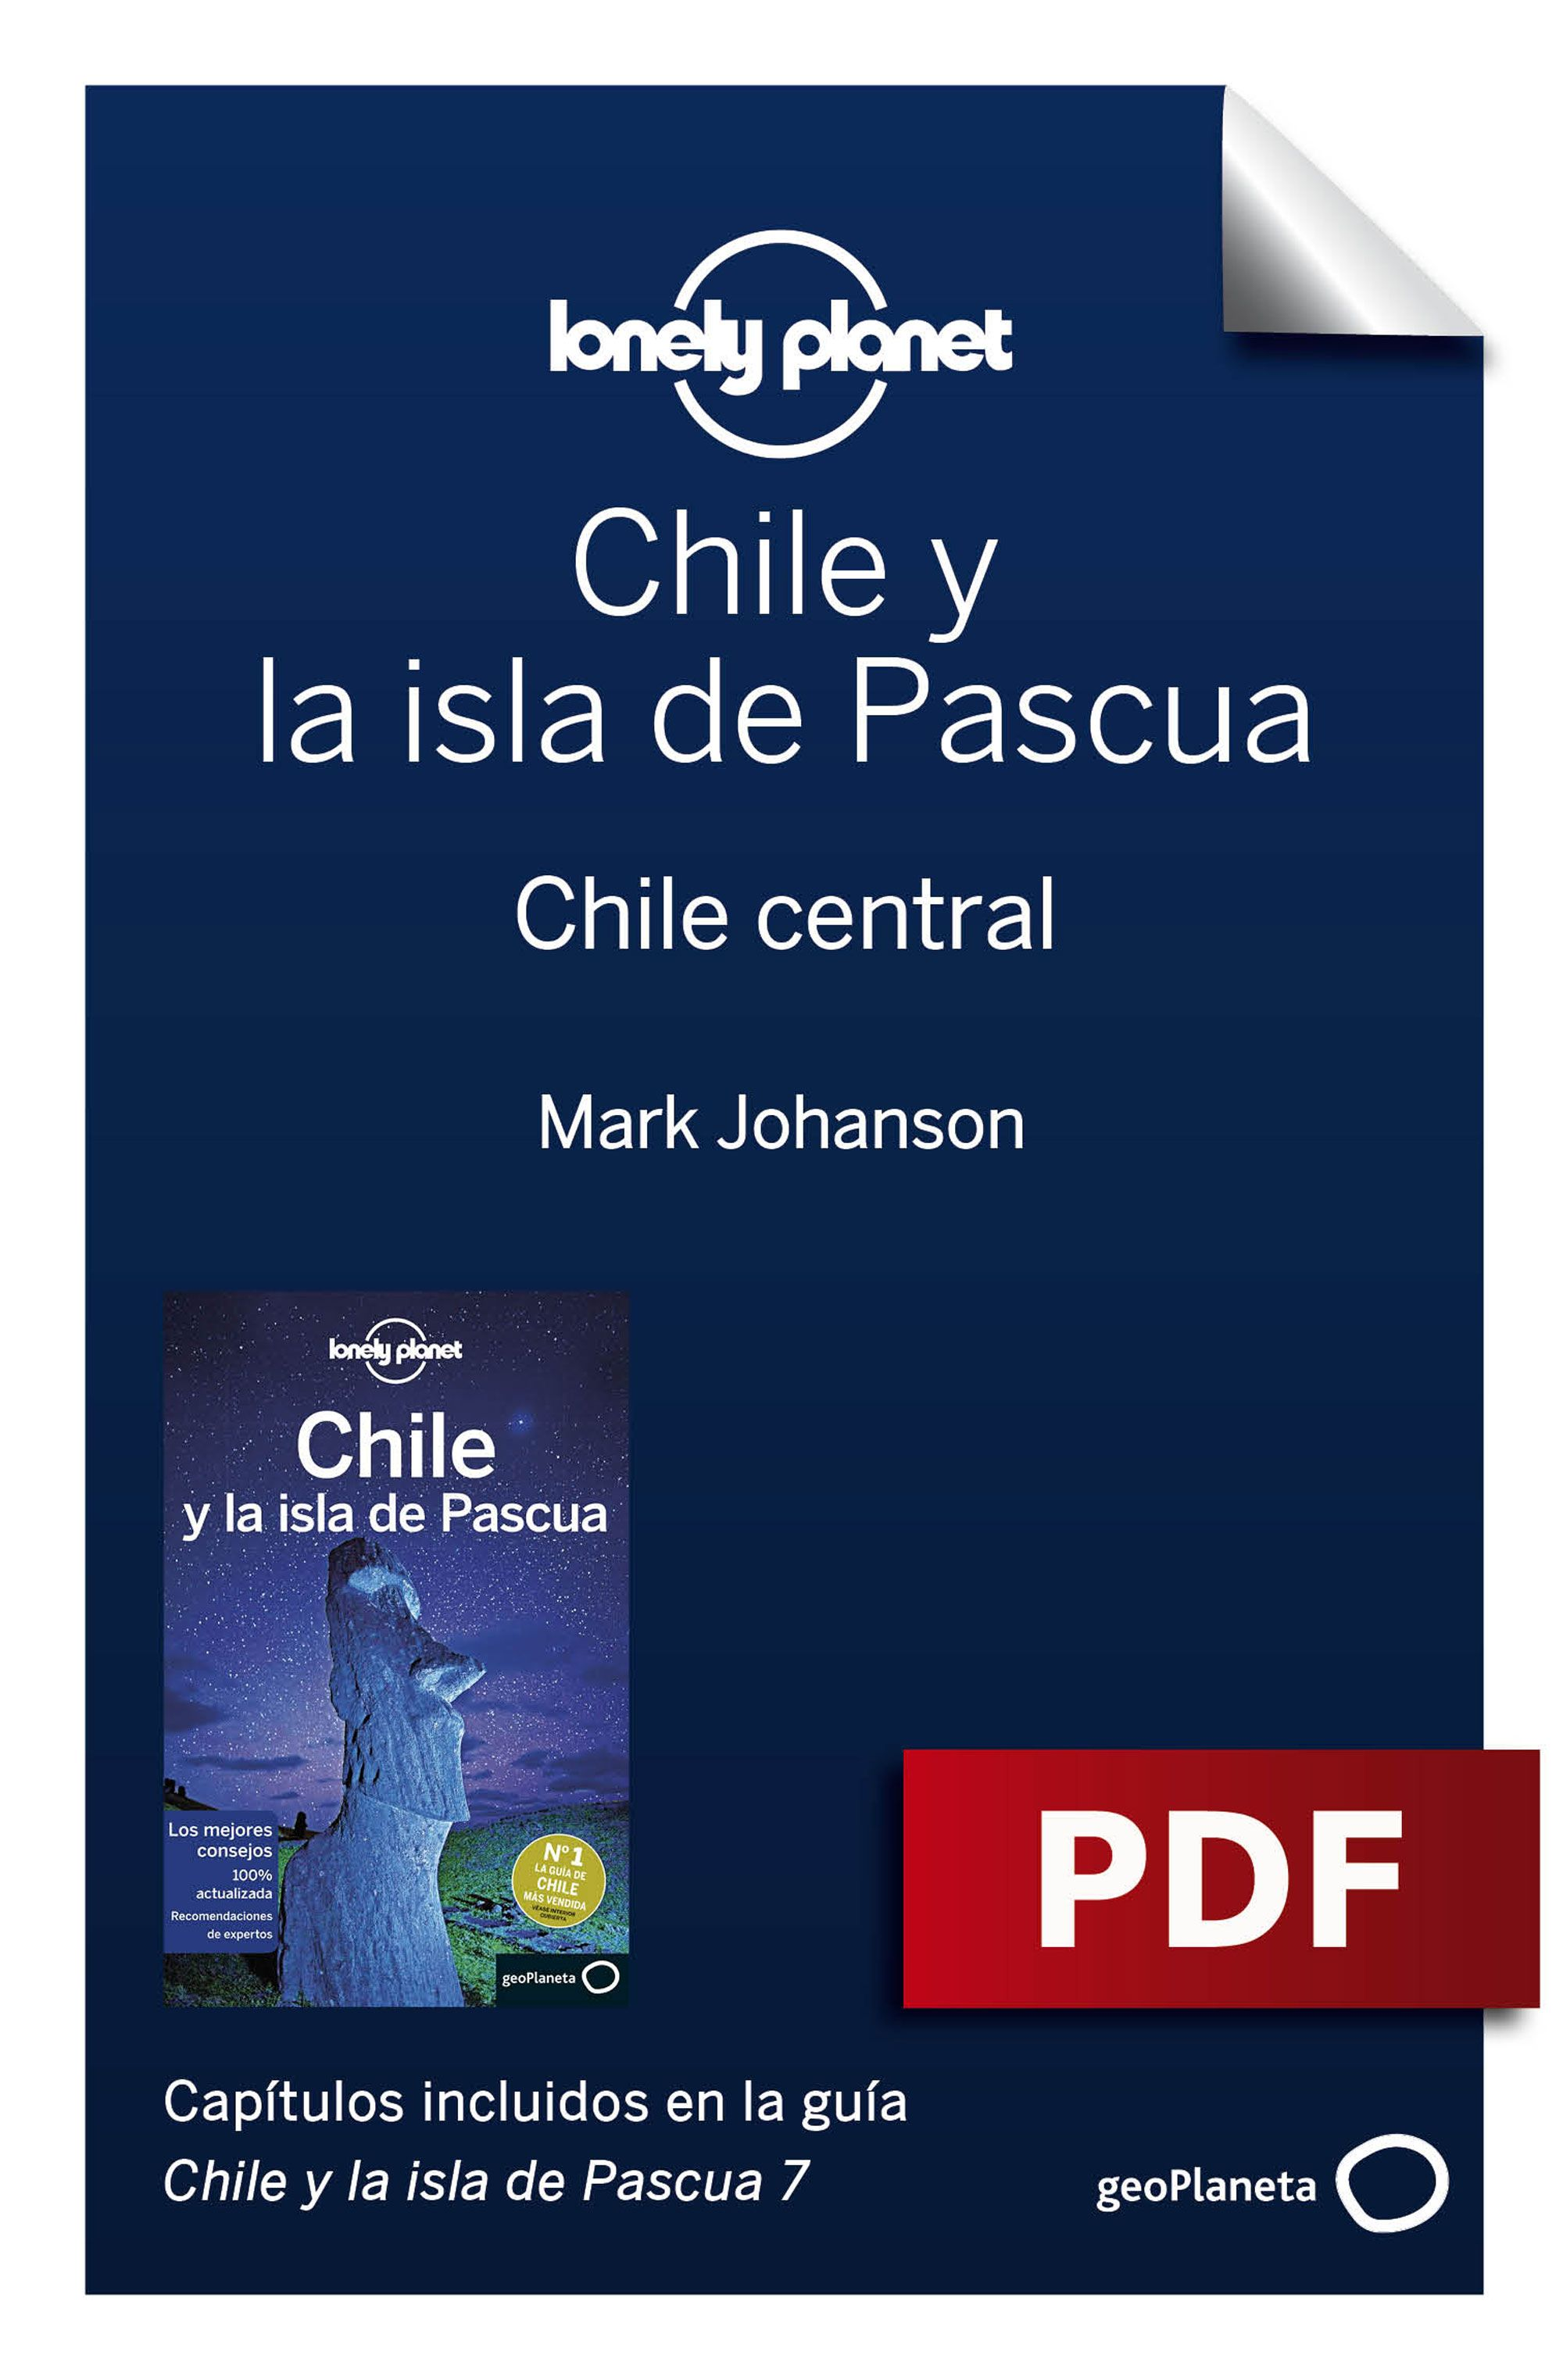 Chile central